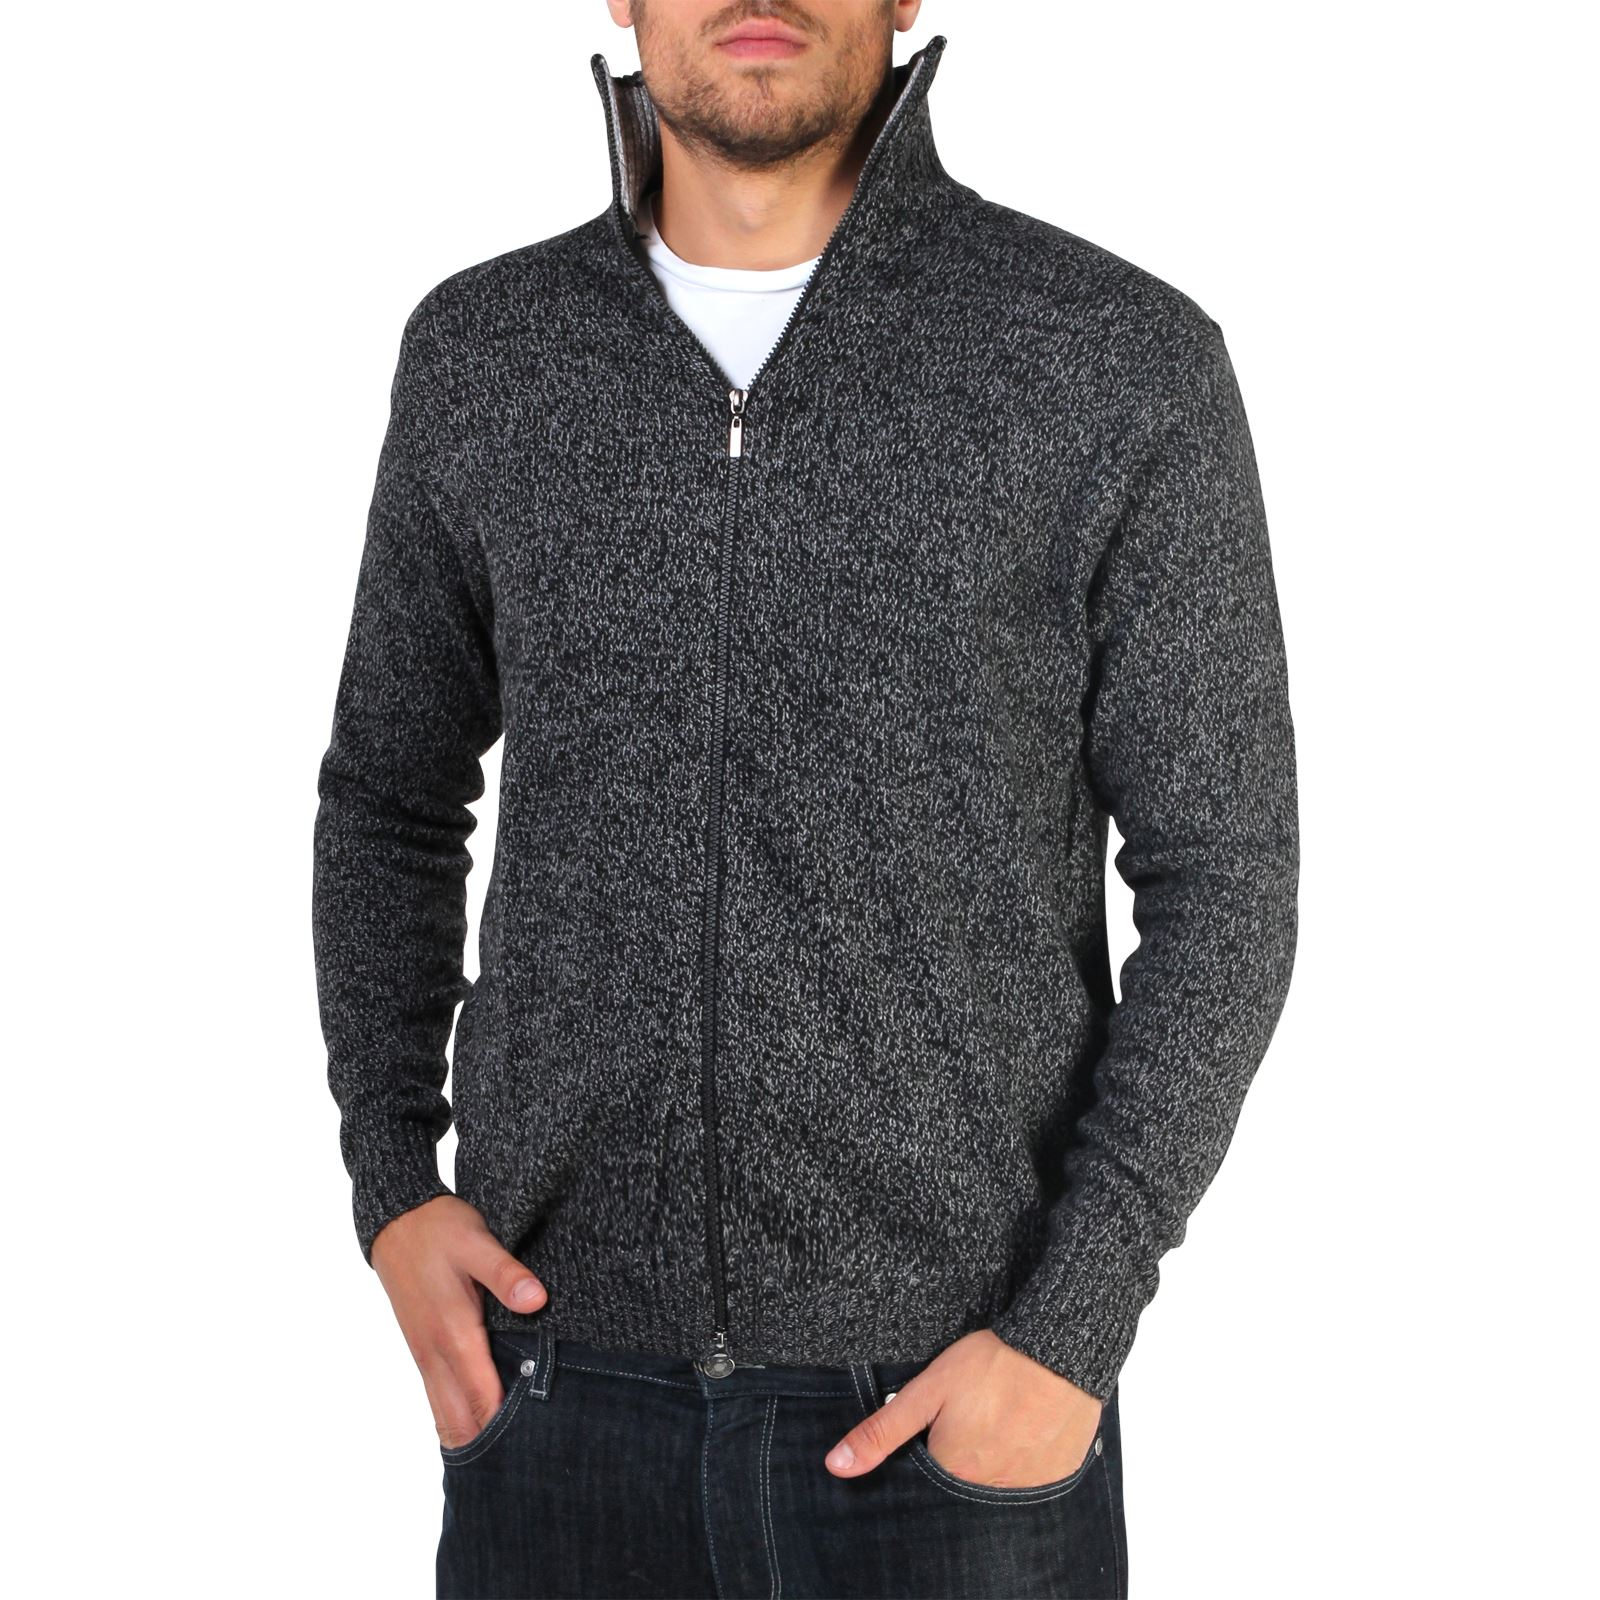 Find great deals on eBay for mens zip up sweater. Shop with confidence.